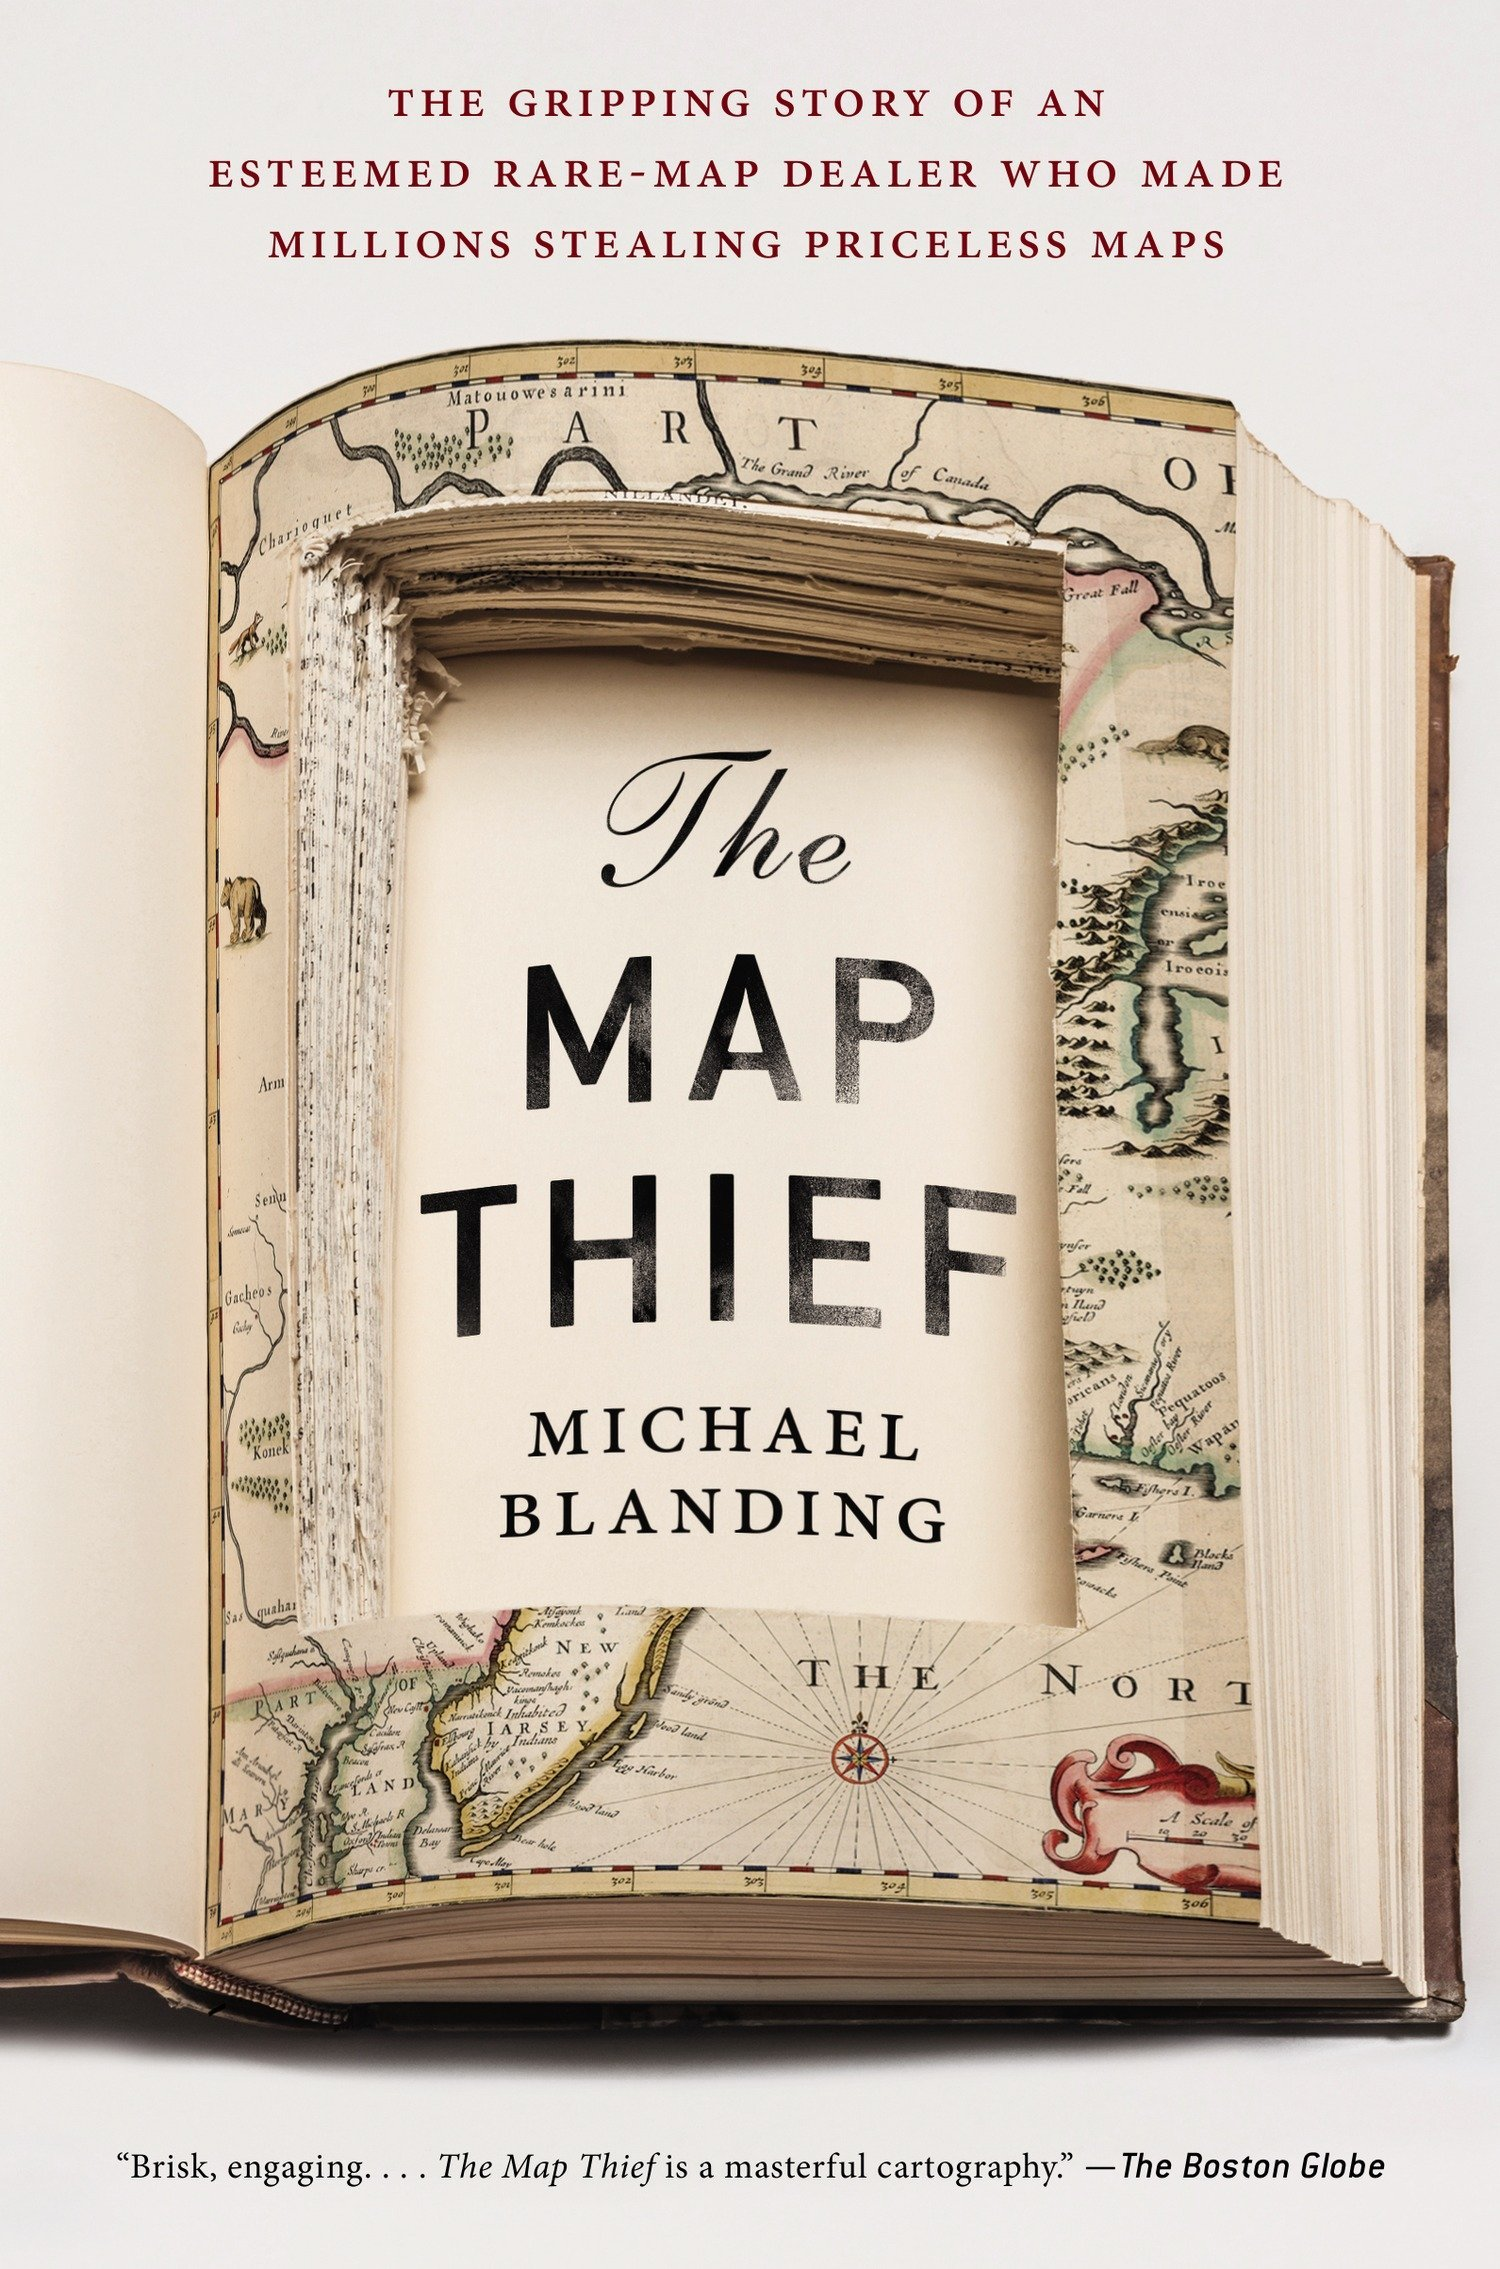 The Map Thief: The Gripping Story of an Esteemed Rare-Map Dealer Who Made  Millions Stealing Priceless Maps: Michael Blanding: 9781592409402:  Amazon.com: ...